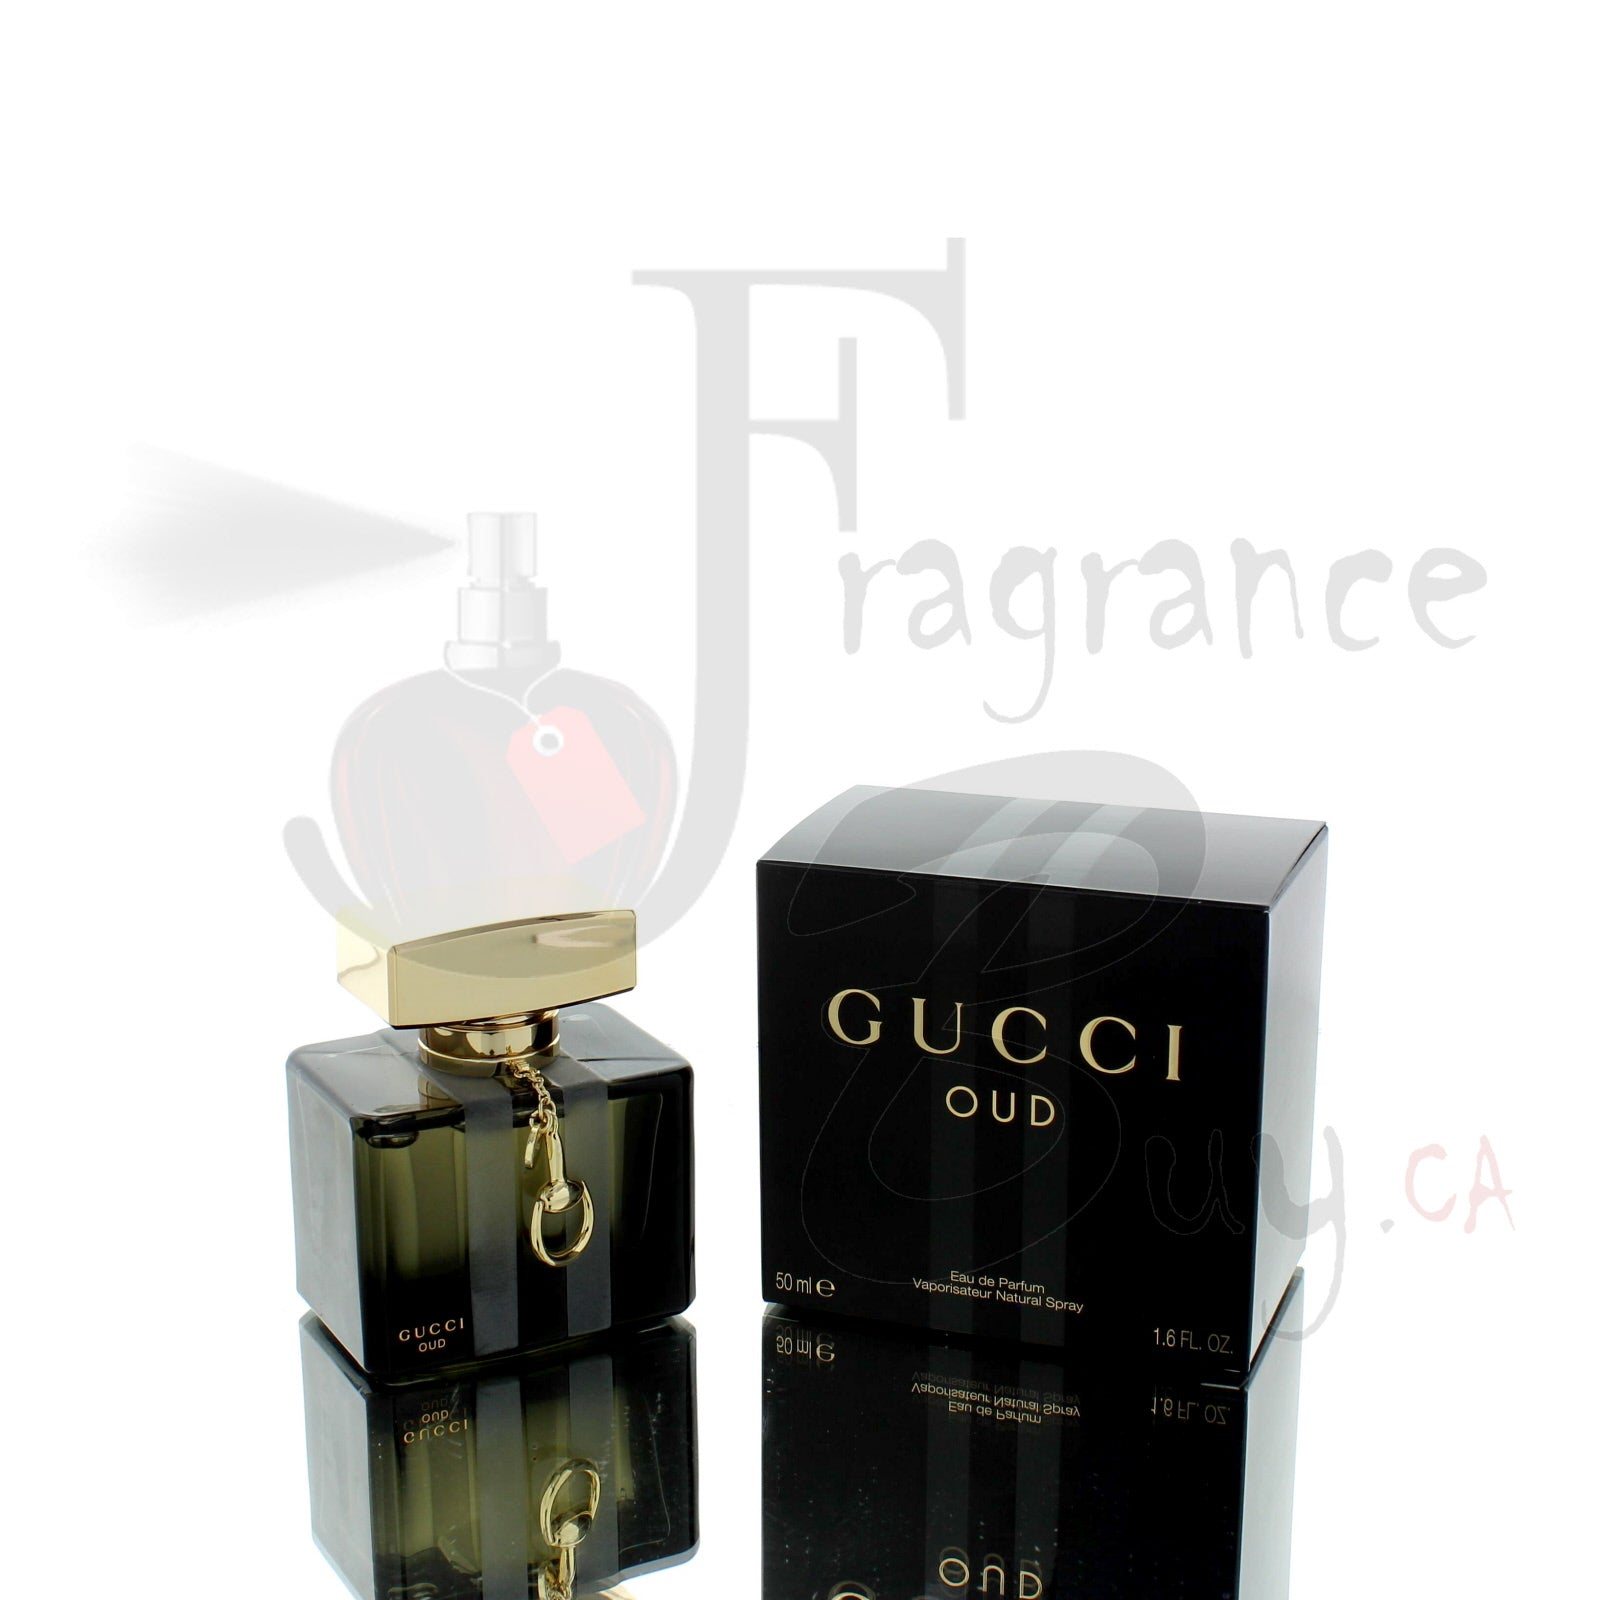 Gucci Oud For Man/Woman